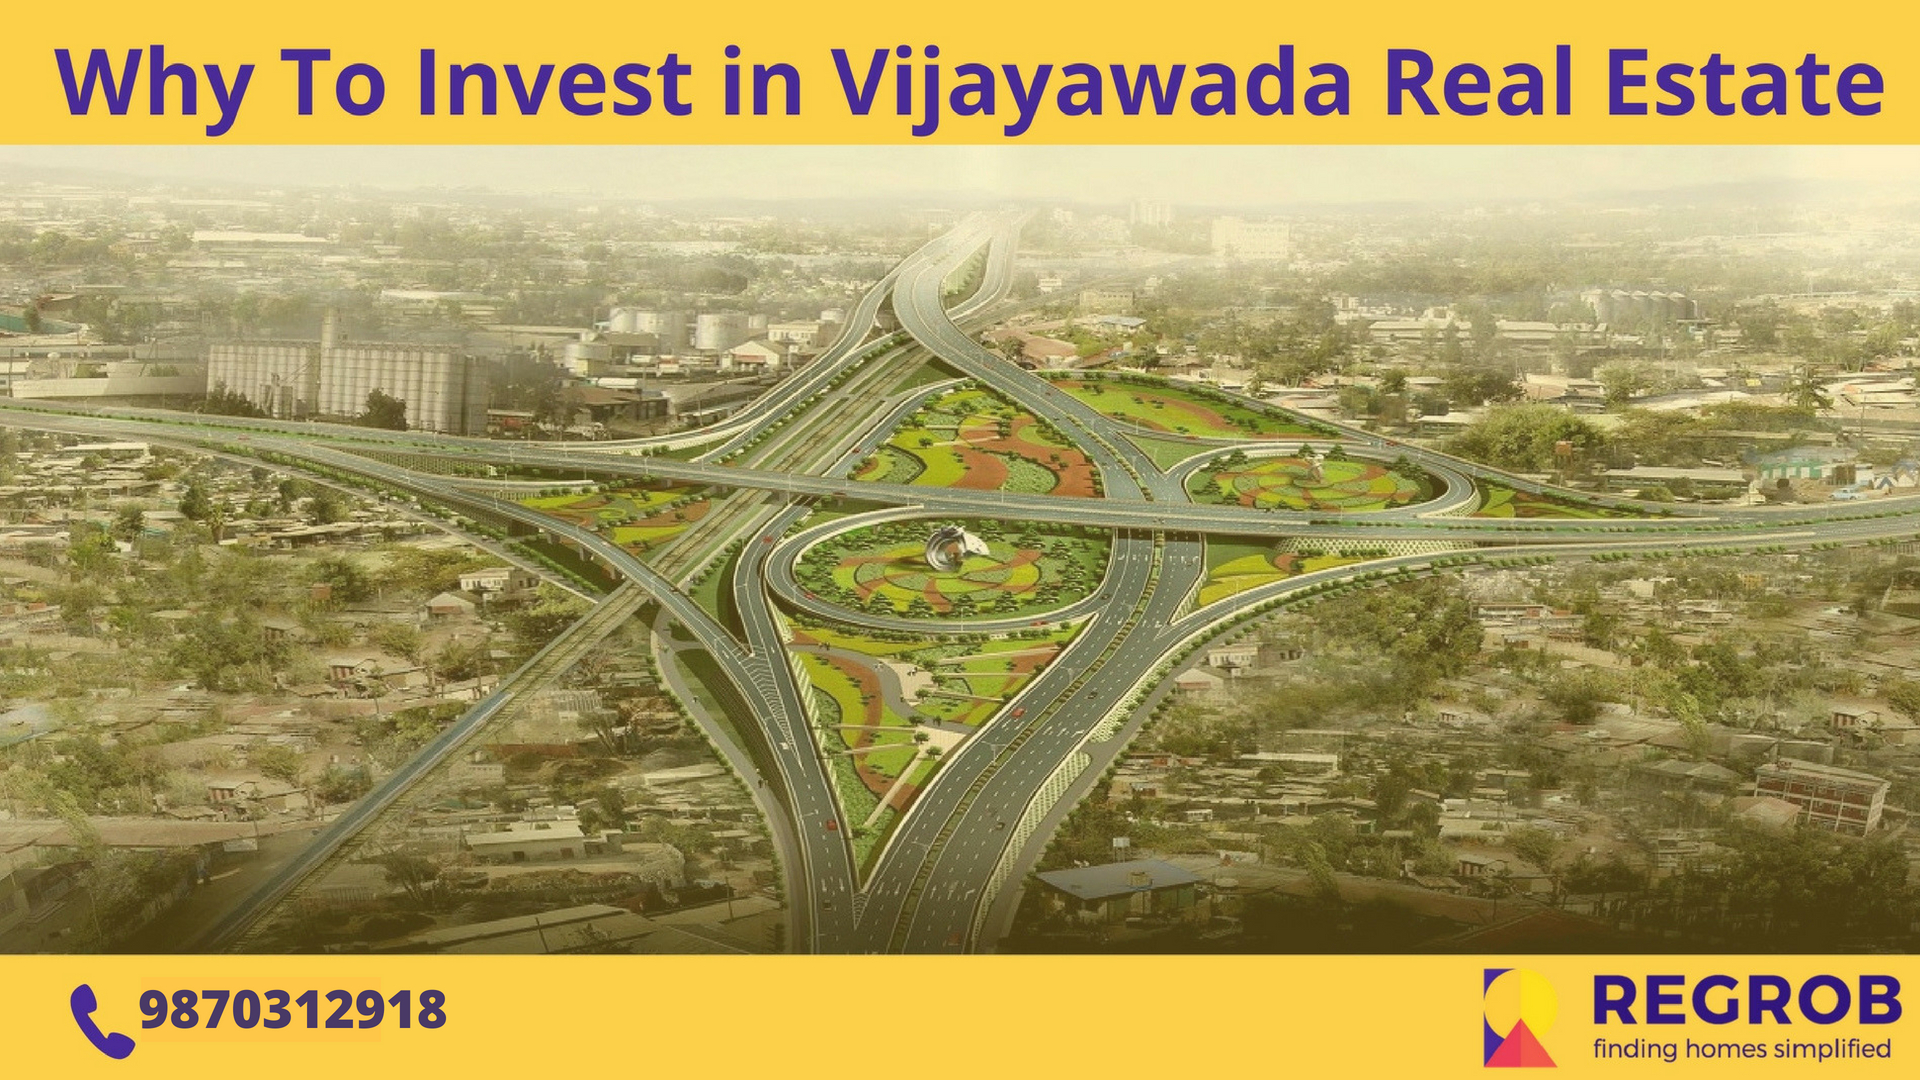 Why to Invest in Vijayawada Real Estate